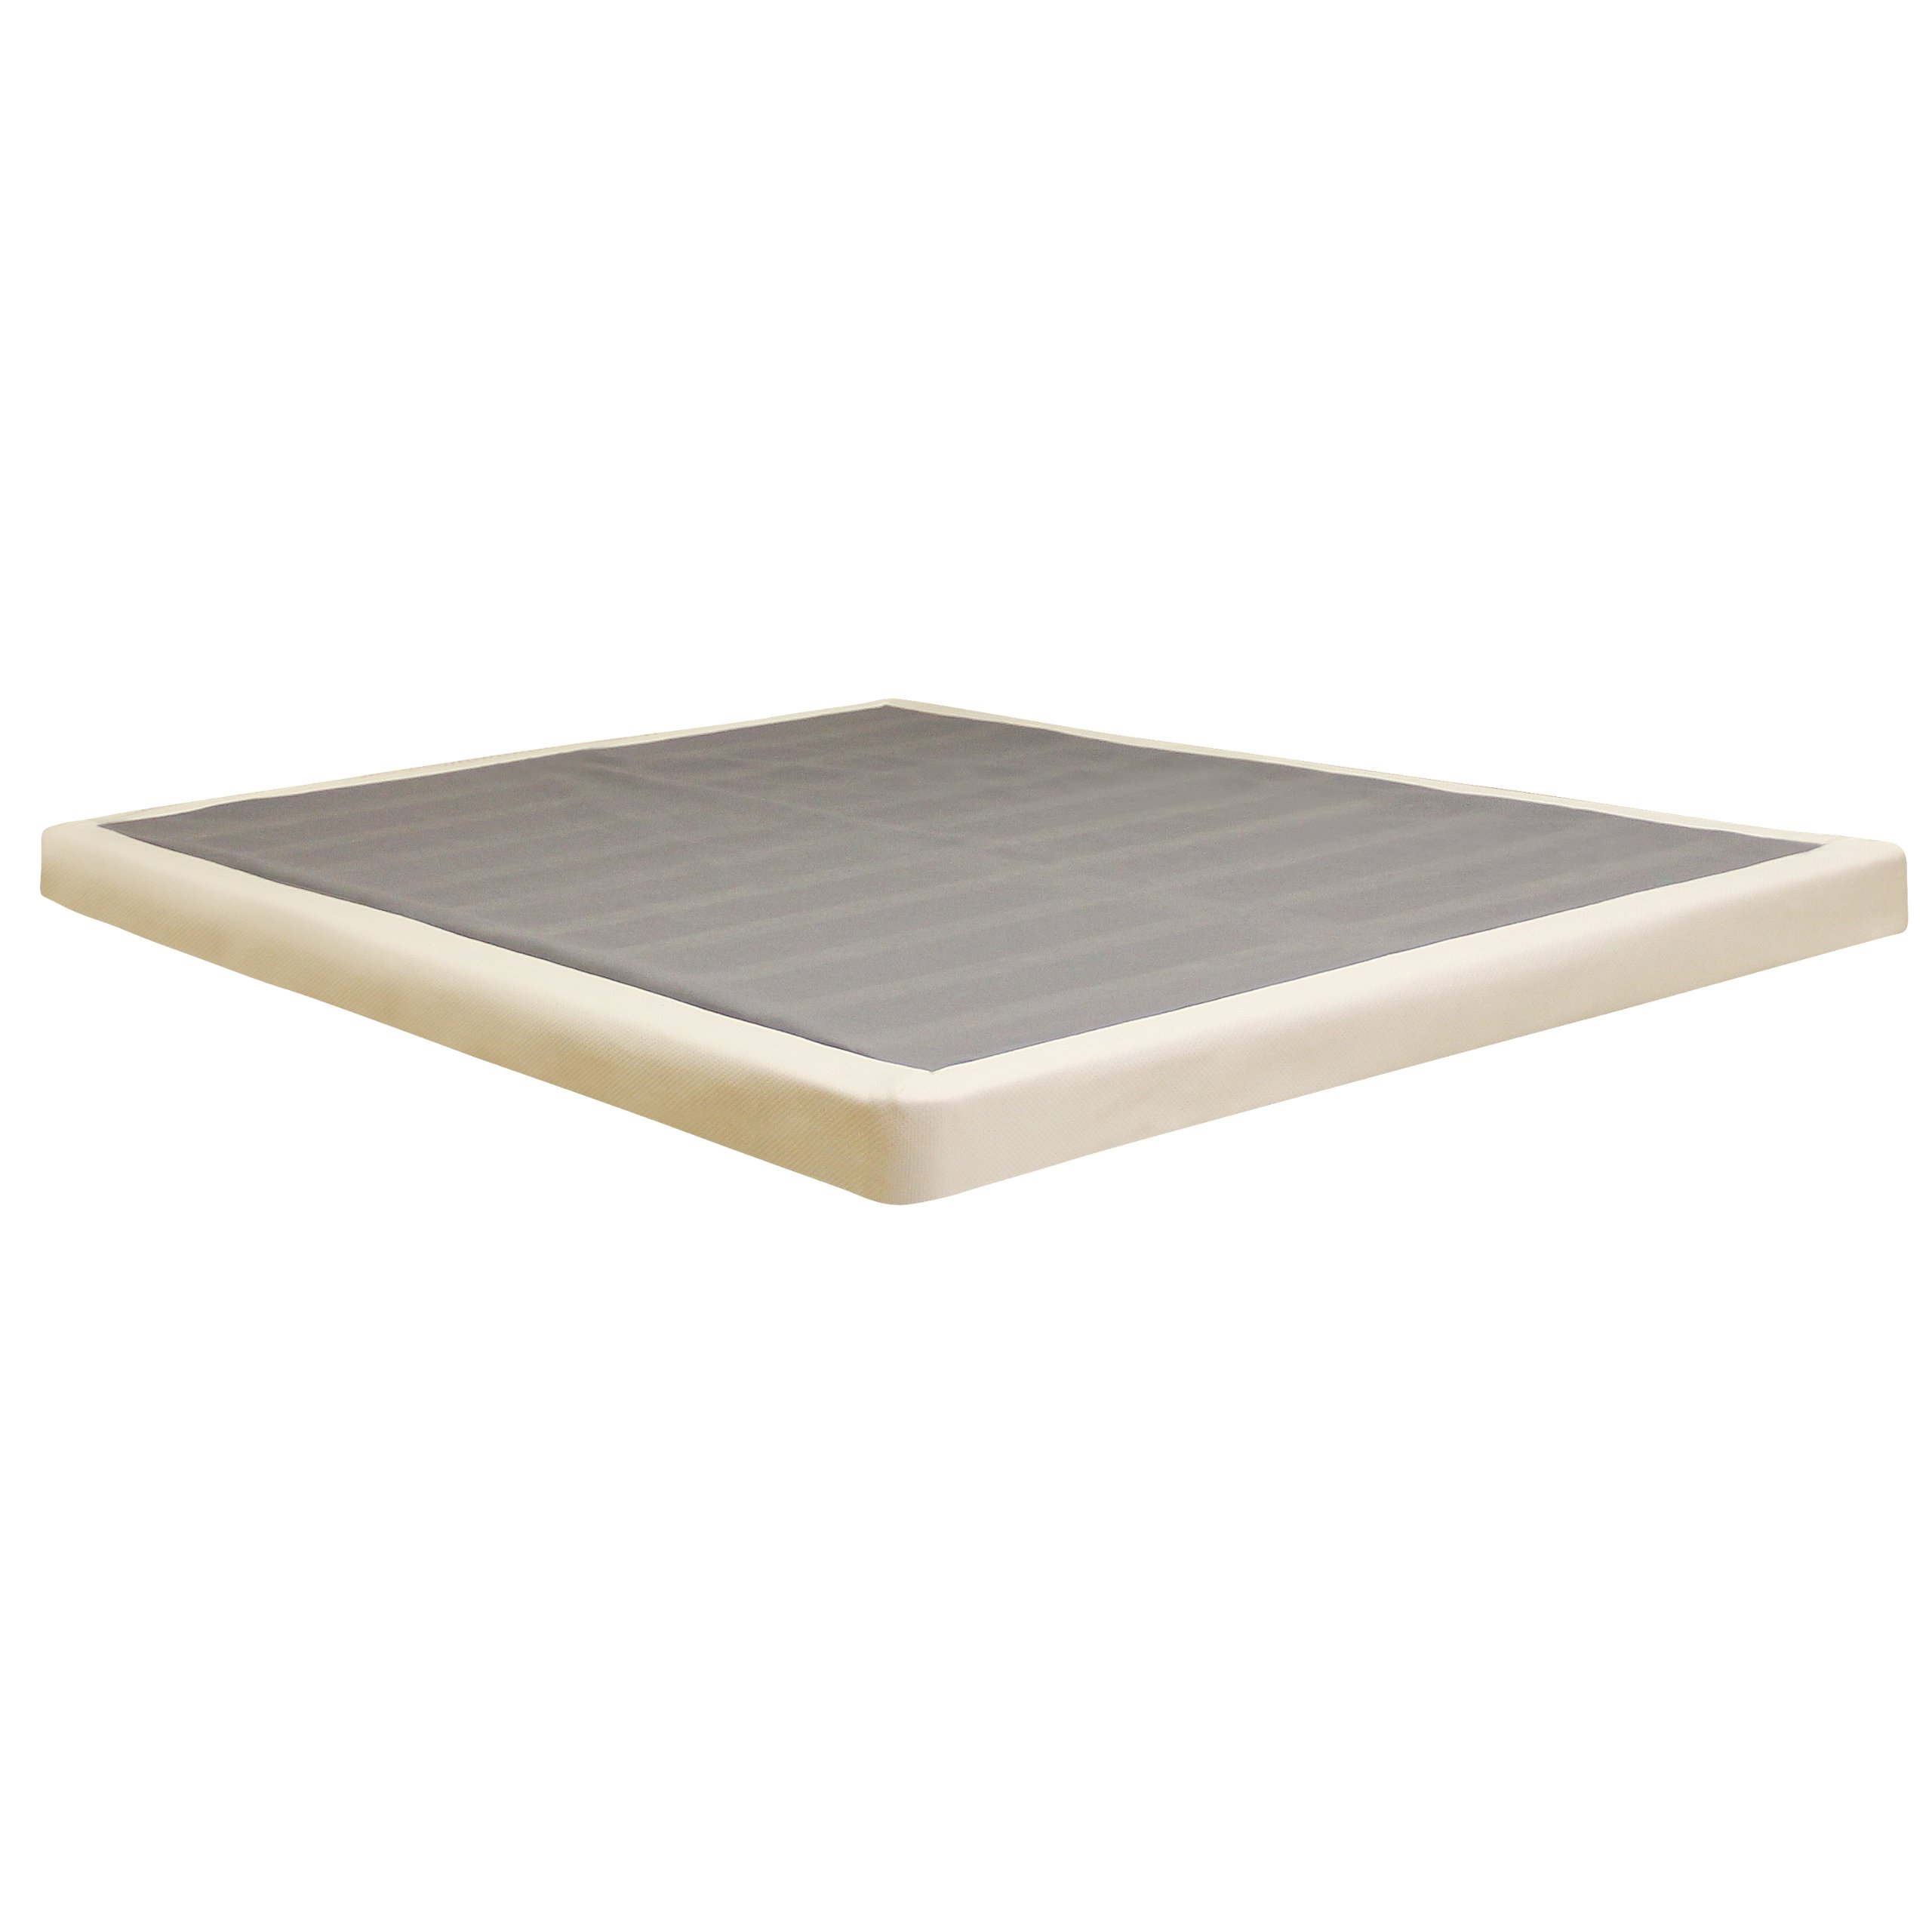 Classic Brands Low Profile Foundation Box Spring 4 Inch